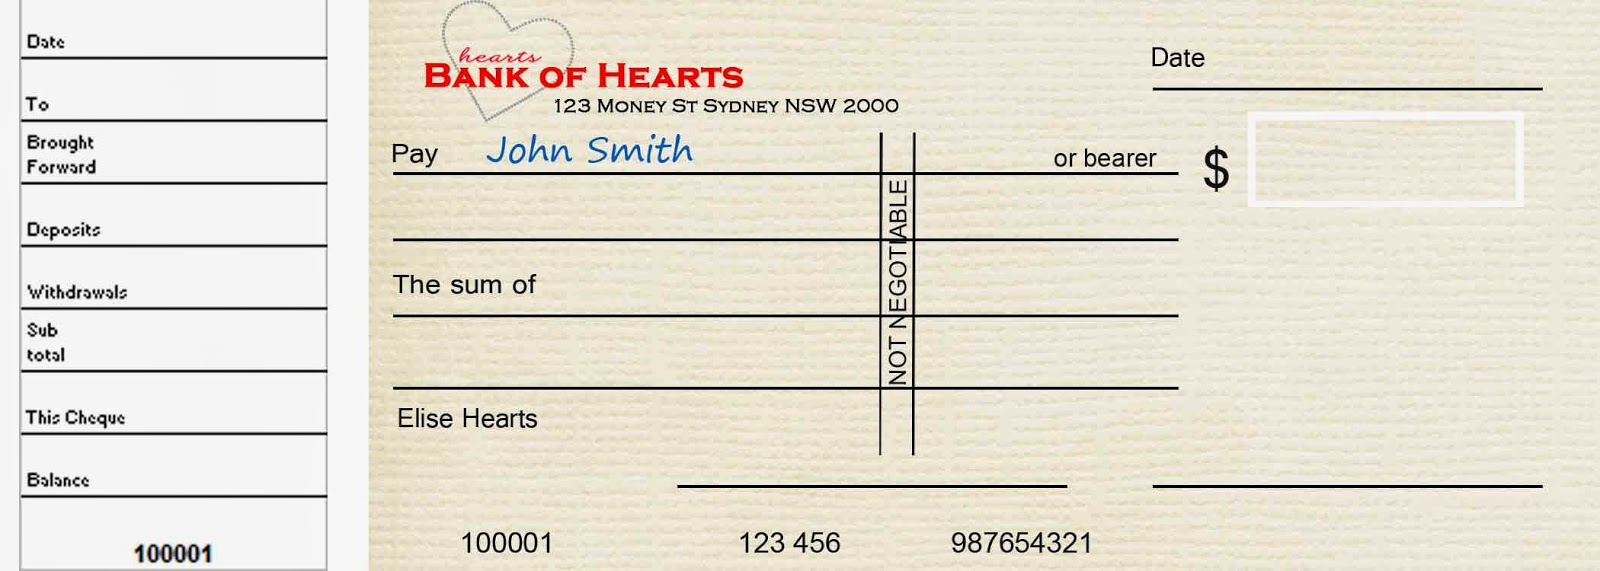 Mummy Hearts Money: The Art of Writing a Cheque